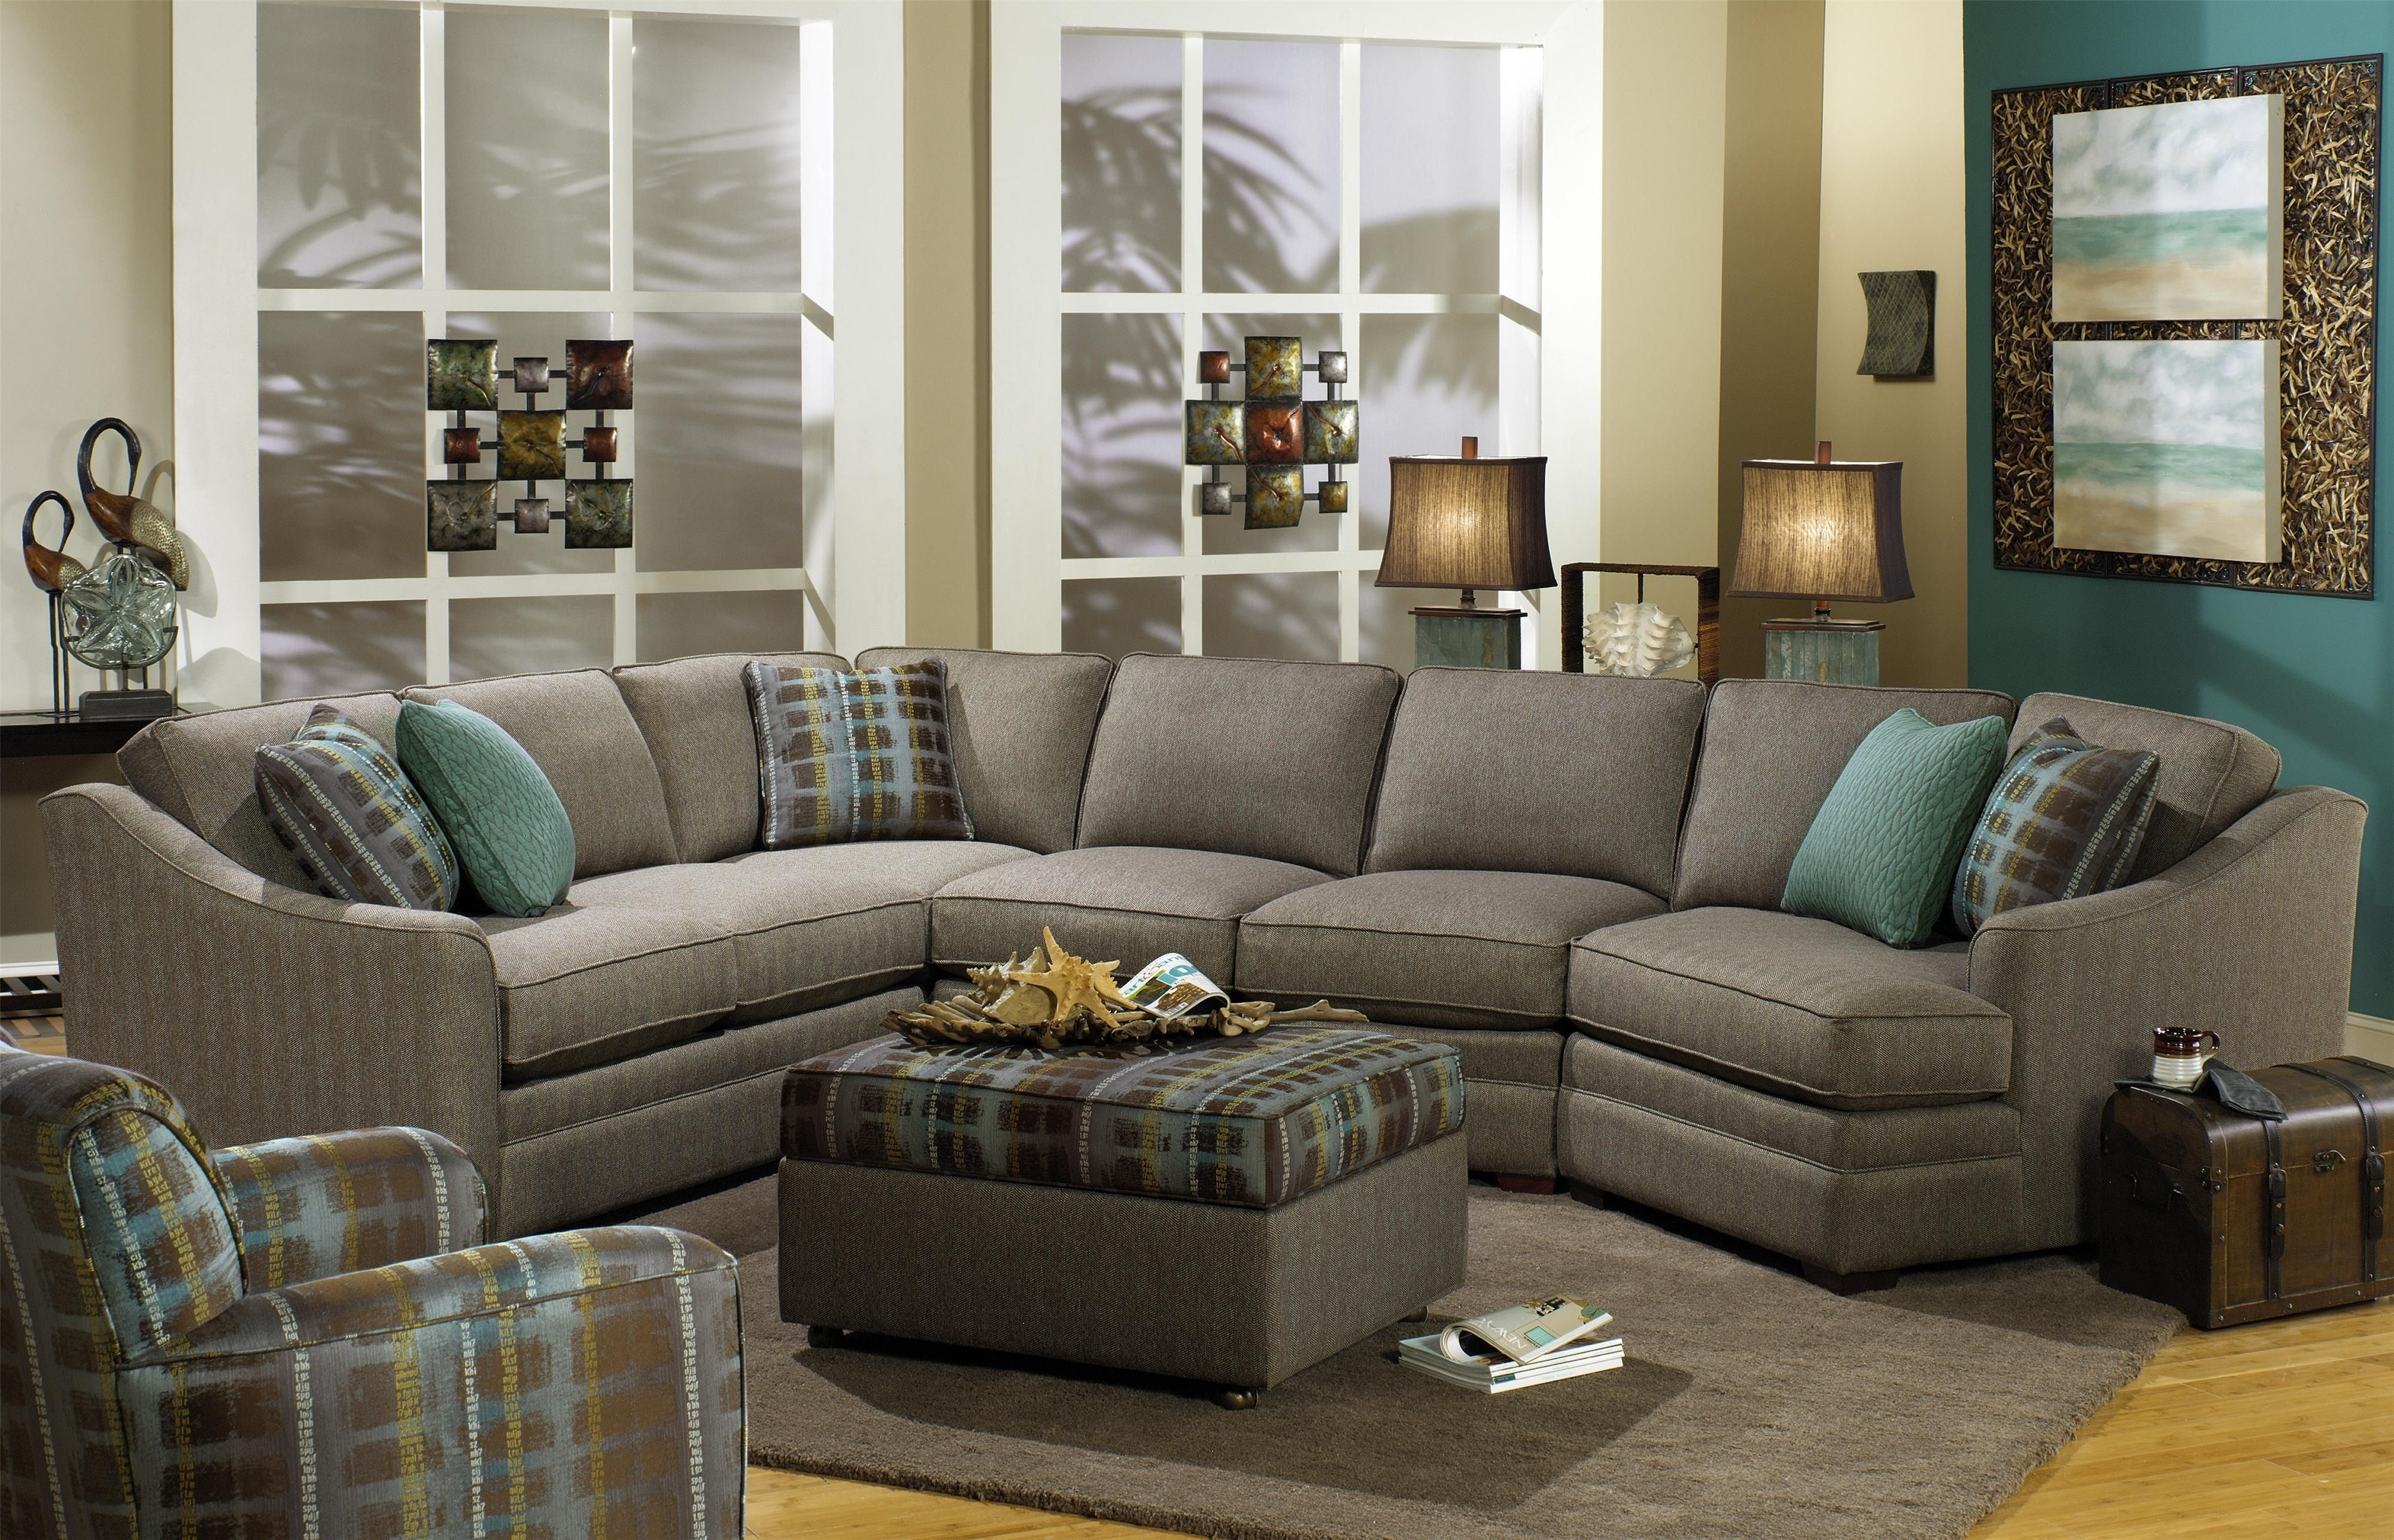 F9 Custom Collection Customizable 3 Piece Sectional With Laf Cuddler Intended For Customizable Sectional Sofas (Image 5 of 10)